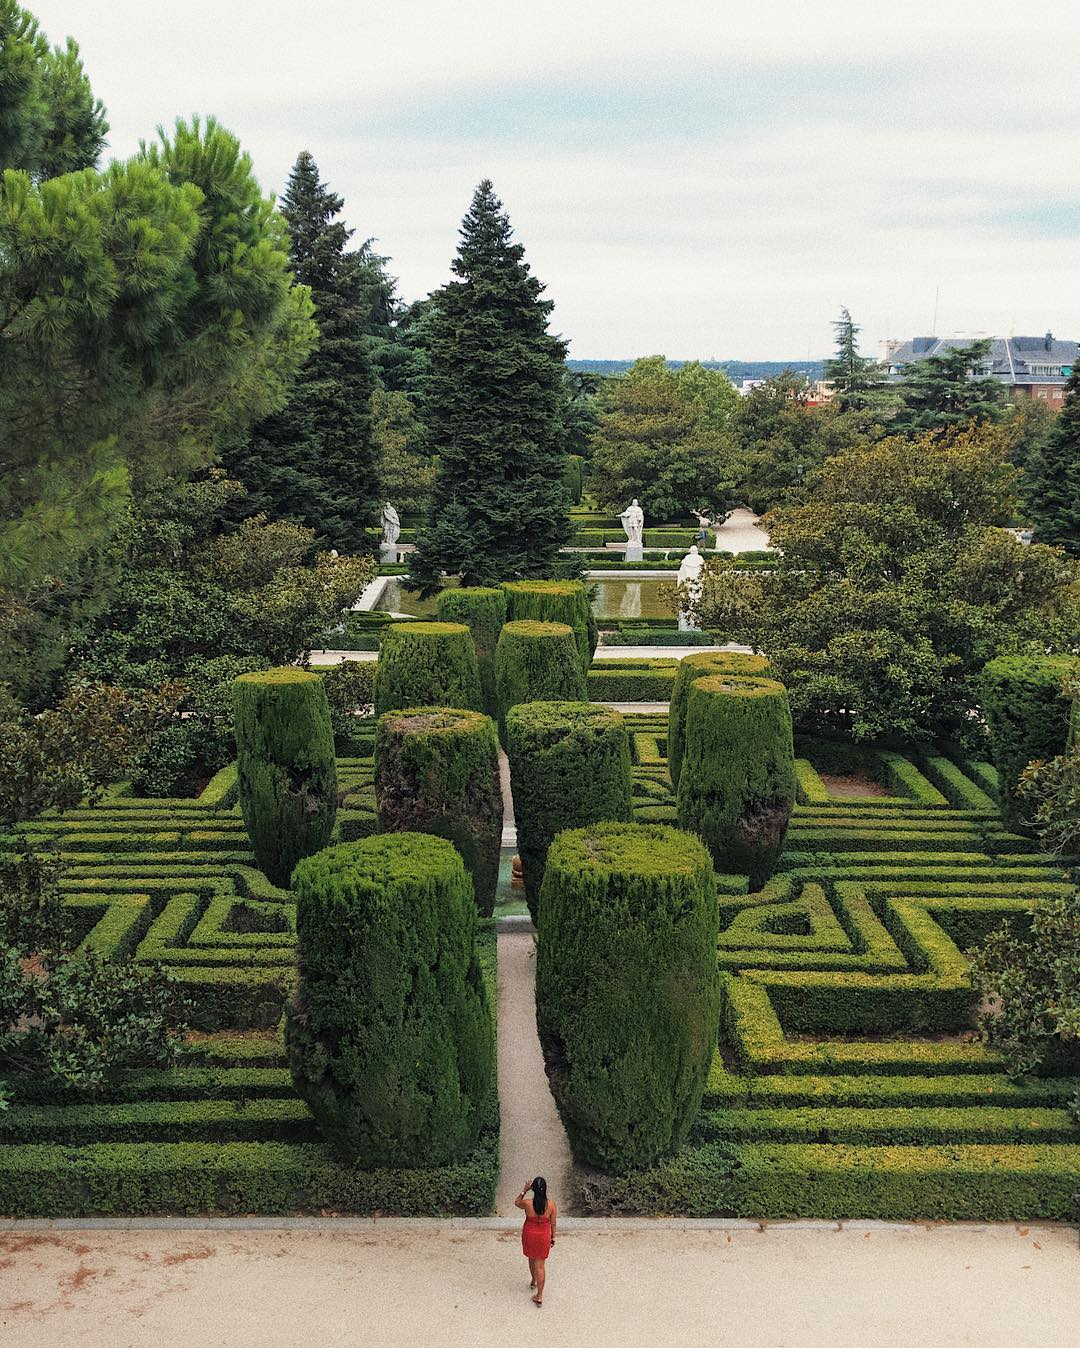 sabatini gardens, Madrid Instagram Spots, most instagrammable places in madrid